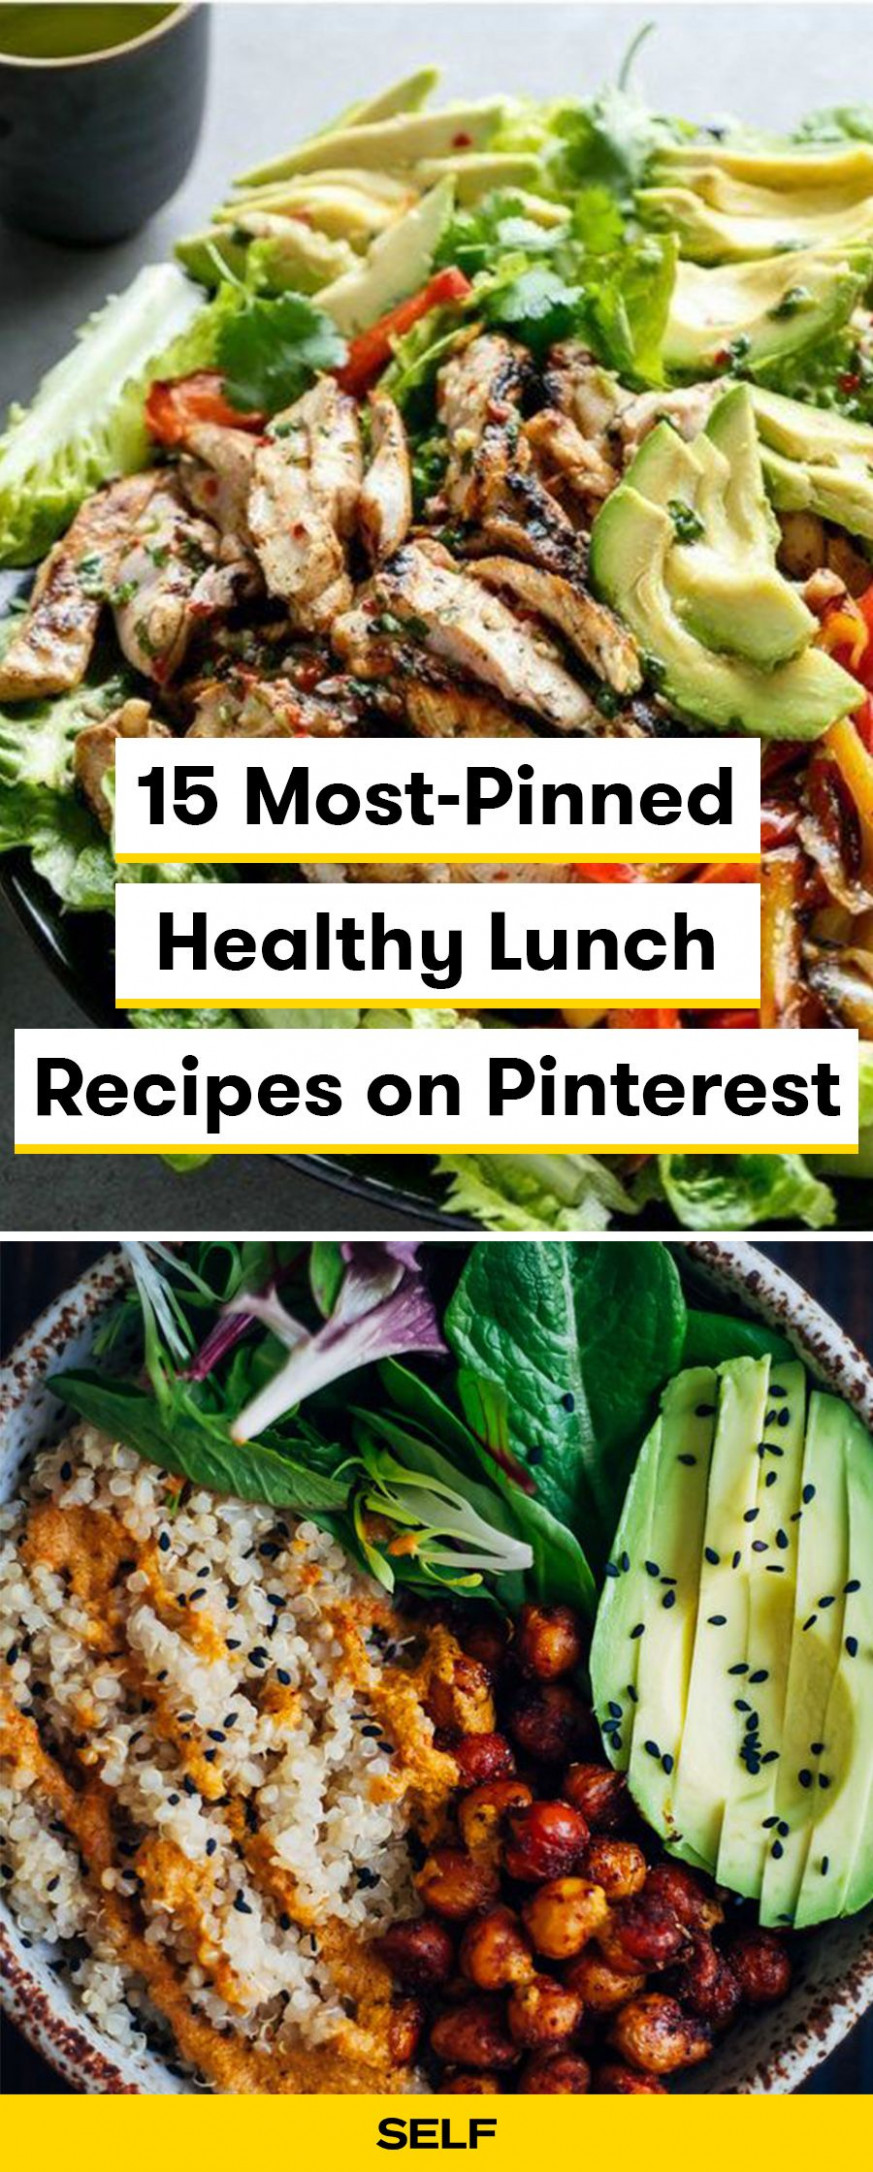 13 Most-Pinned Healthy Lunch Recipes on Pinterest | healthy ..